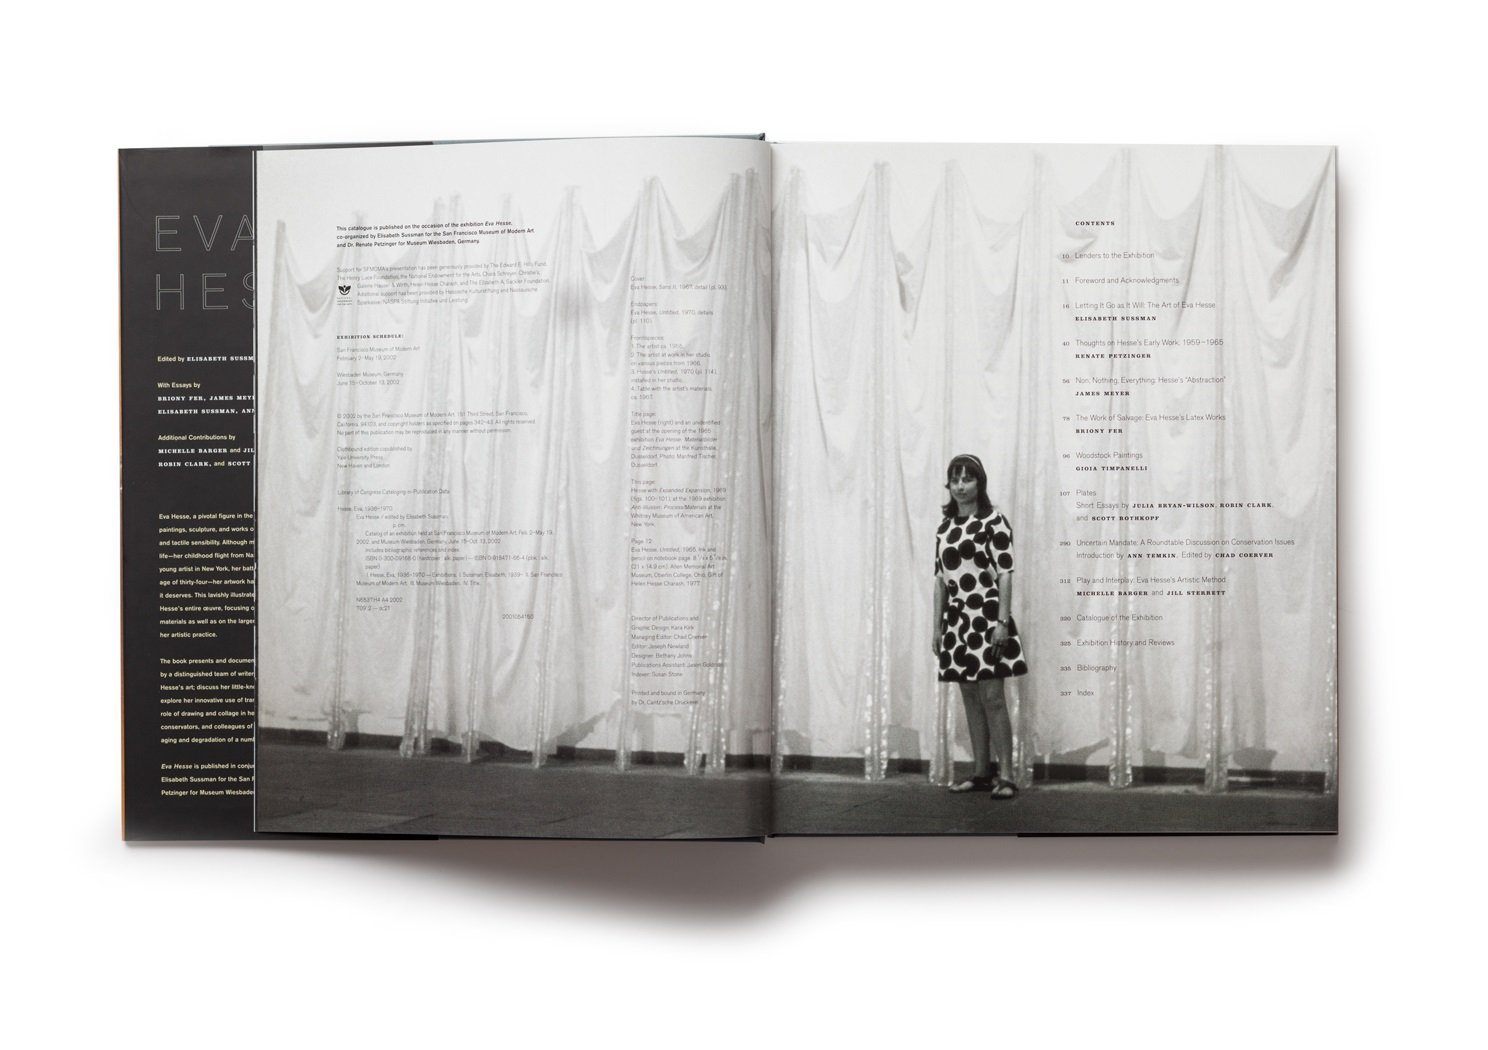 Eva Hesse publication table of contents